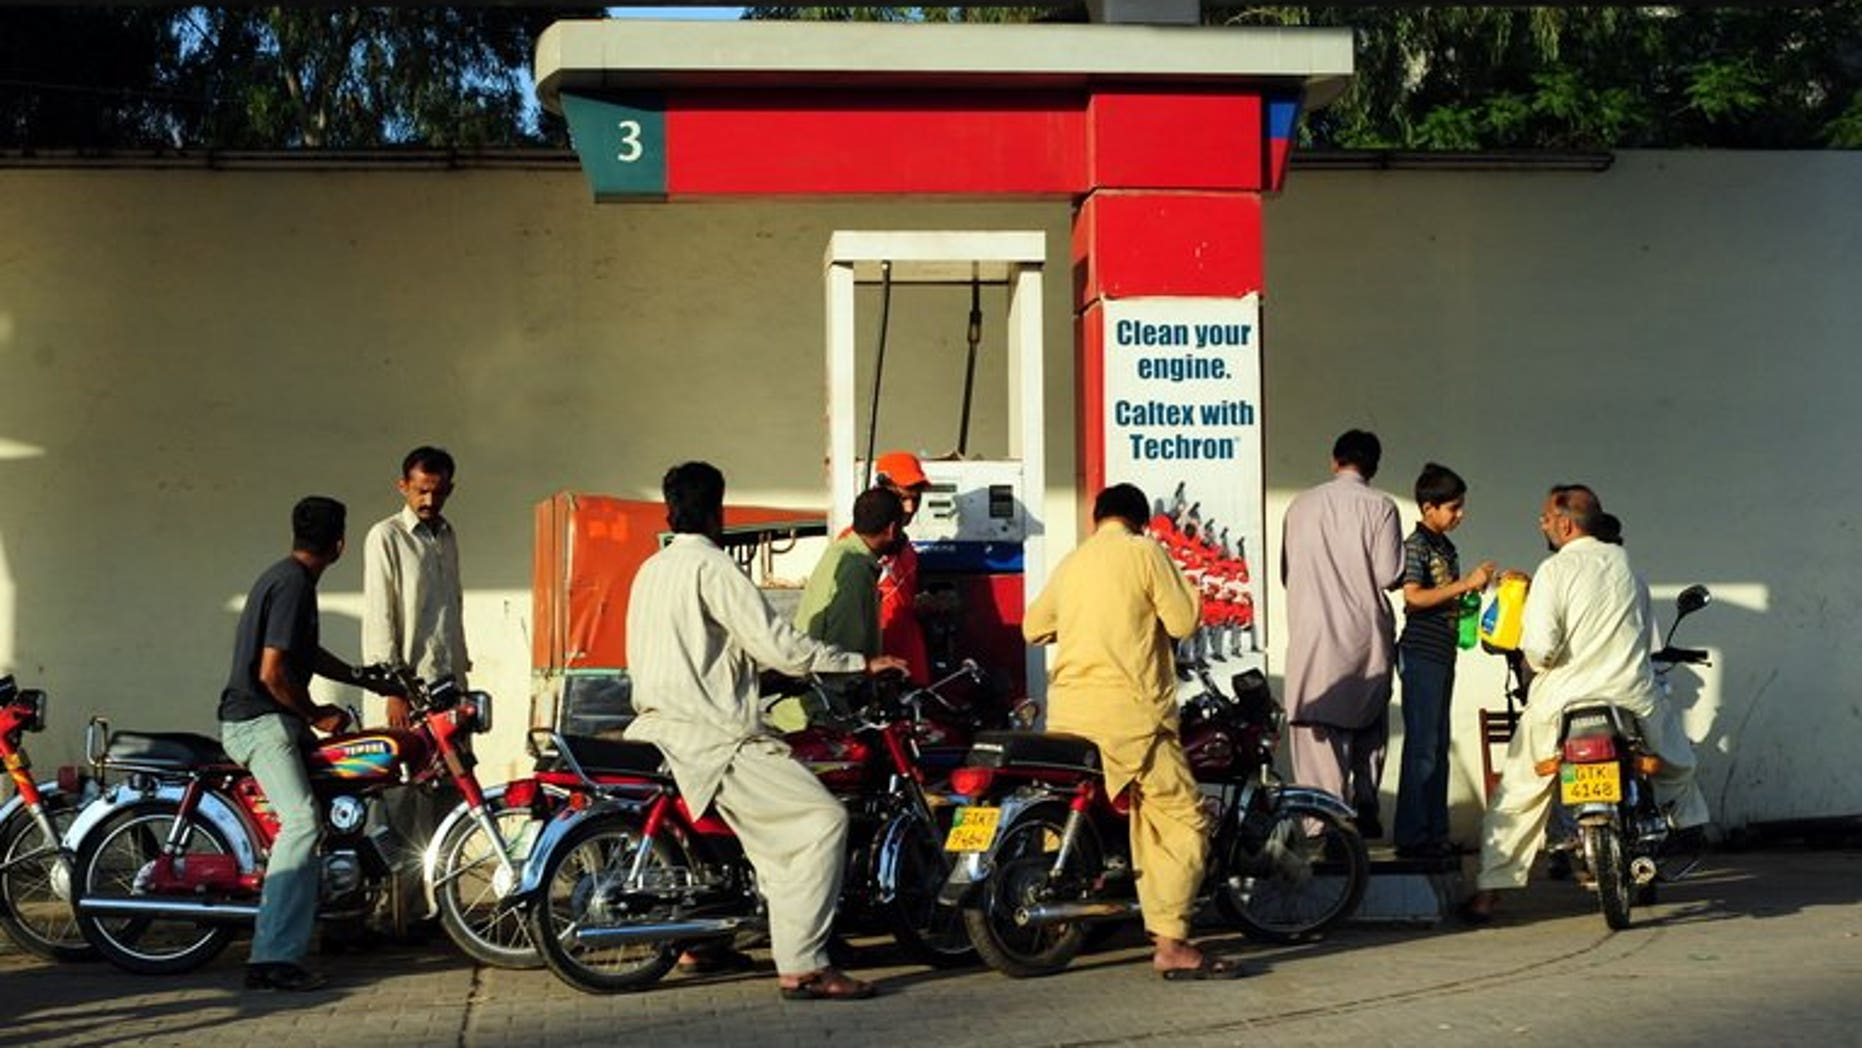 Pakistani motorcyclists gather around an oil filling point at a petrol station in Gujrat on April 15, 2011. French energy giant Total and its Pakistani partner PARCO said Wednesday they had reached a deal with American oil major Chevron to buy its fuel distribution network in Pakistan.